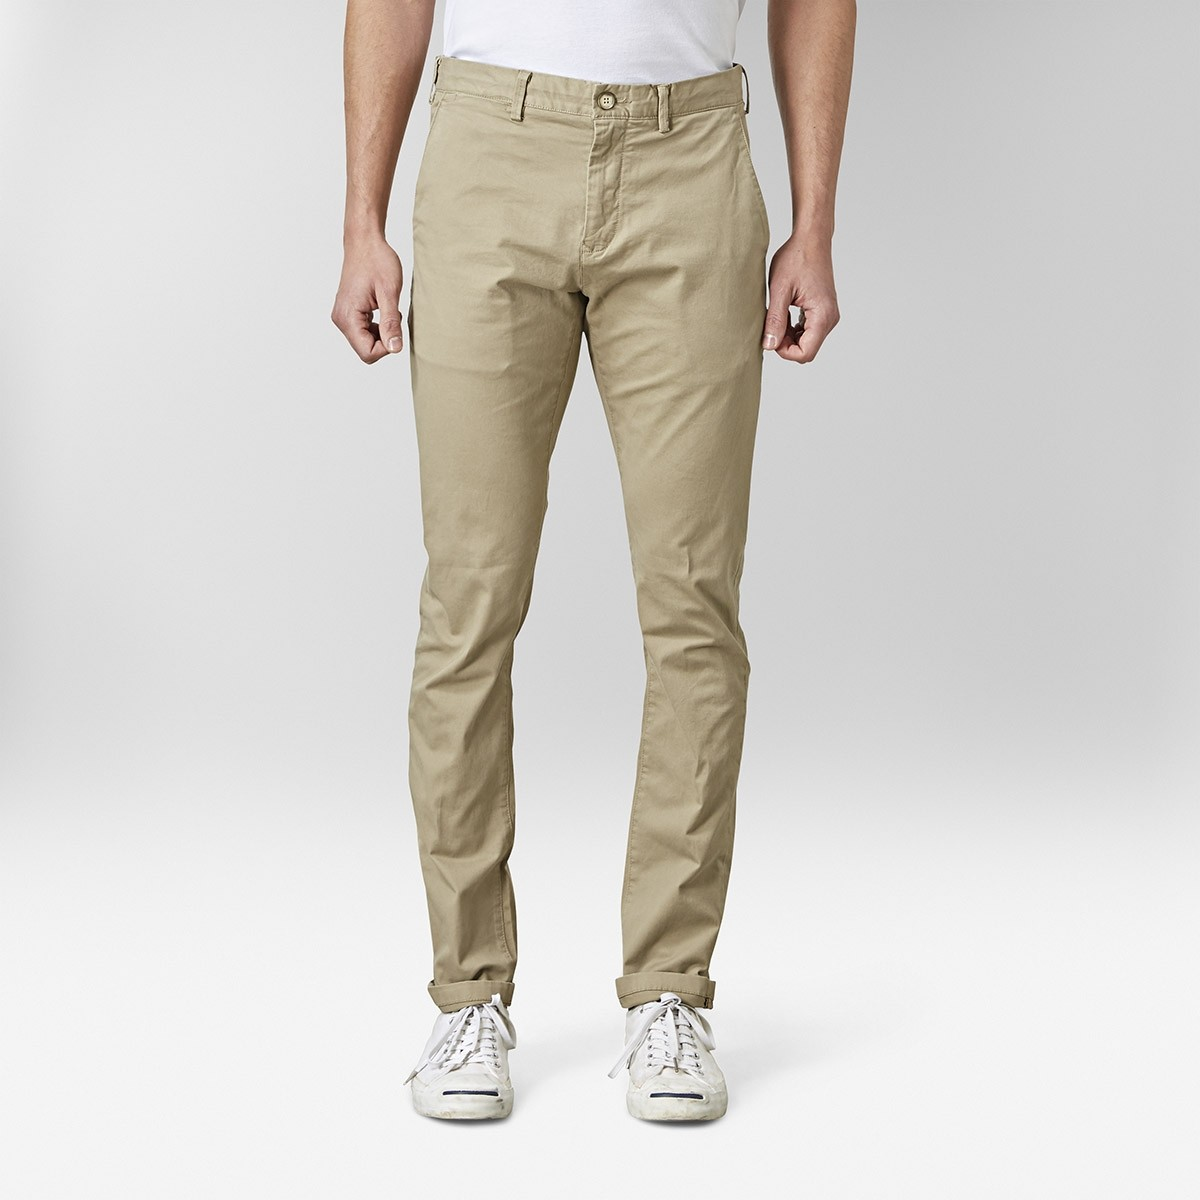 Barton Chinos Beige 2 | East West | Brothers.se